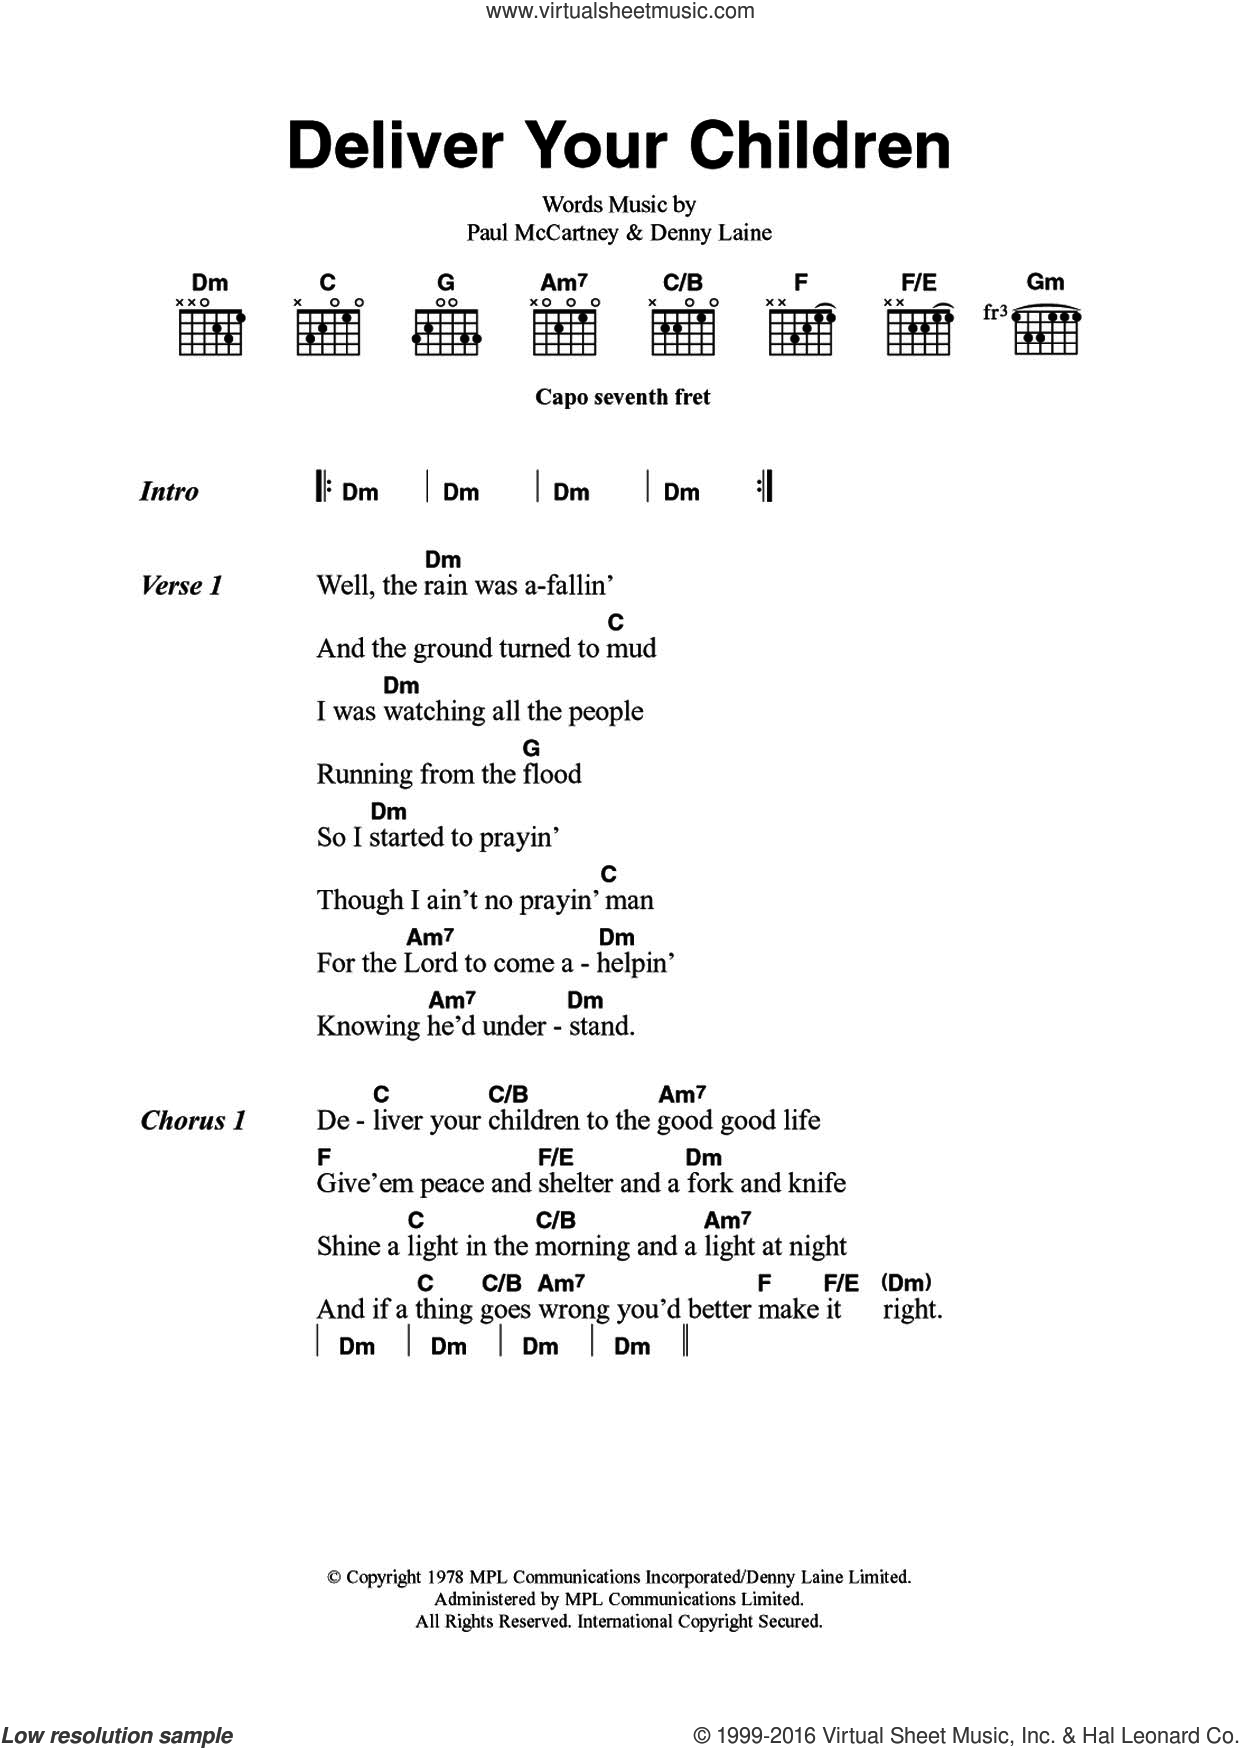 Deliver Your Children sheet music for guitar (chords) by Paul McCartney, Wings and Denny Laine. Score Image Preview.